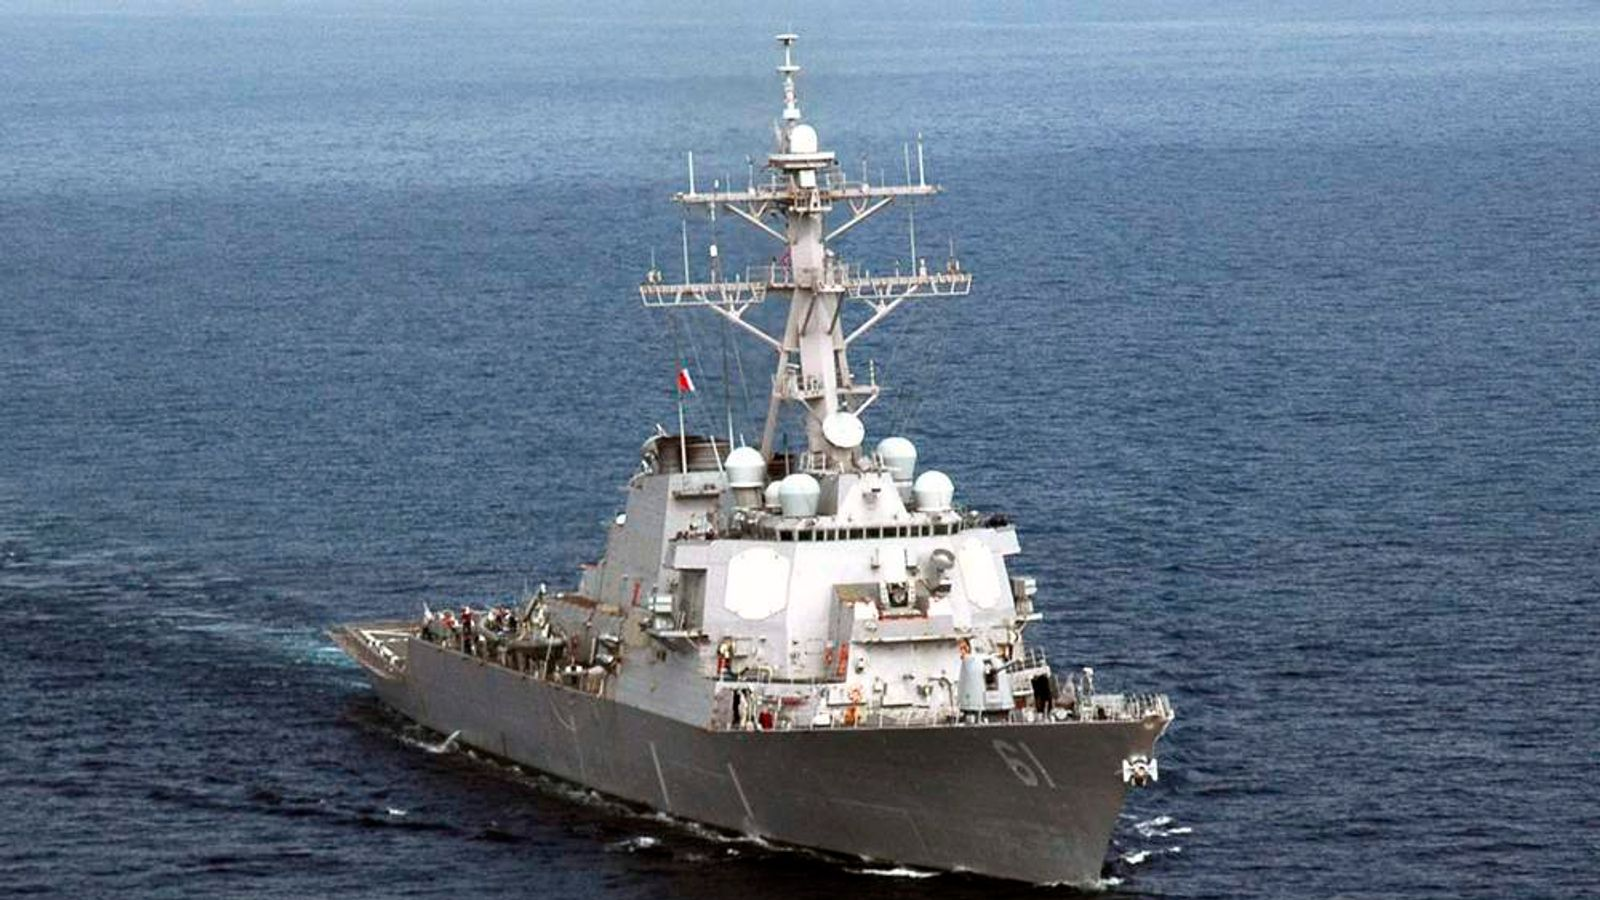 Guided-missile destroyer USS Ramage operating in the Arabian Gulf